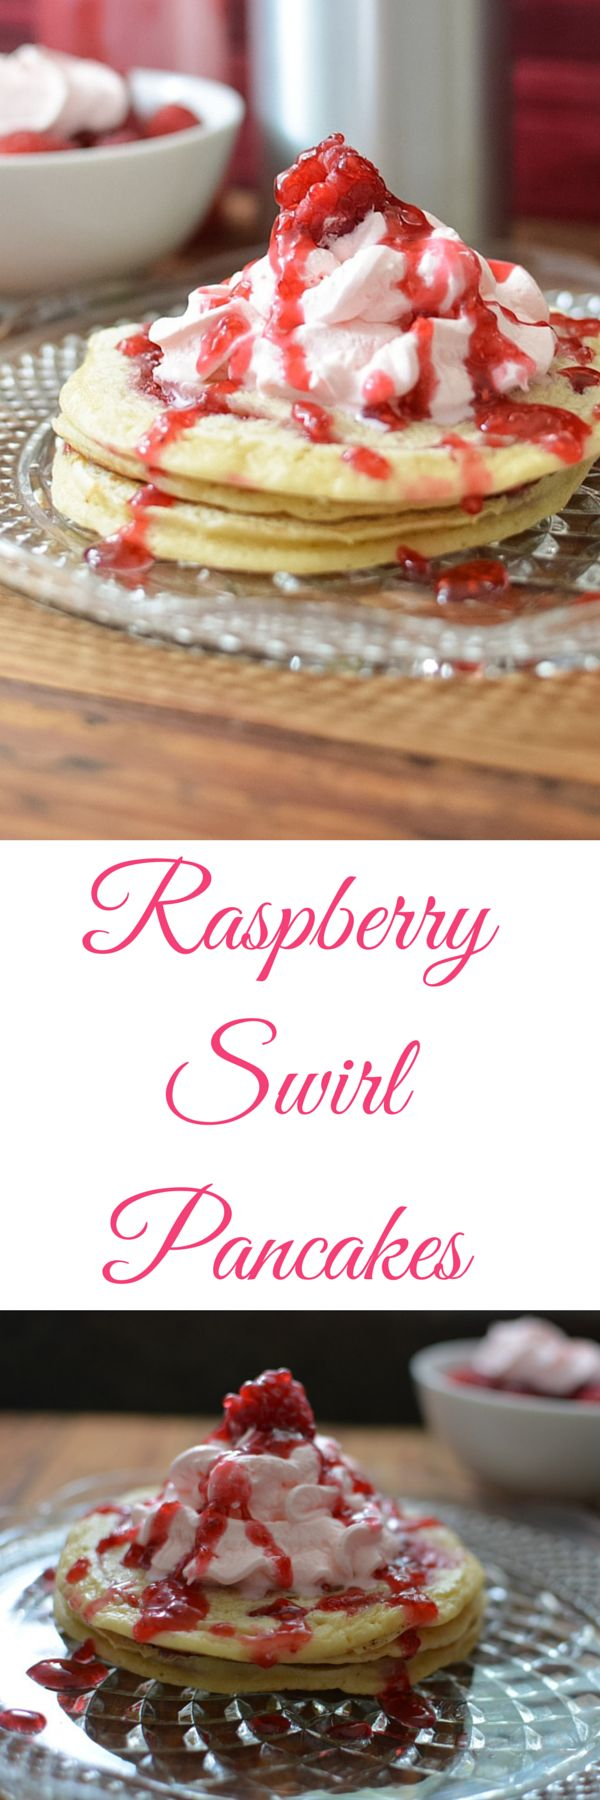 Raspberry Swirl Pancakes with a lightly sweetened raspberry whip cream topping.  With a swirl of a homemade raspberry syrup these raspberry pancakes are a fruit lovers dream pancake.  Not your ordinary pancake recipe these pancakes have a swirl of raspberry syrup inside.